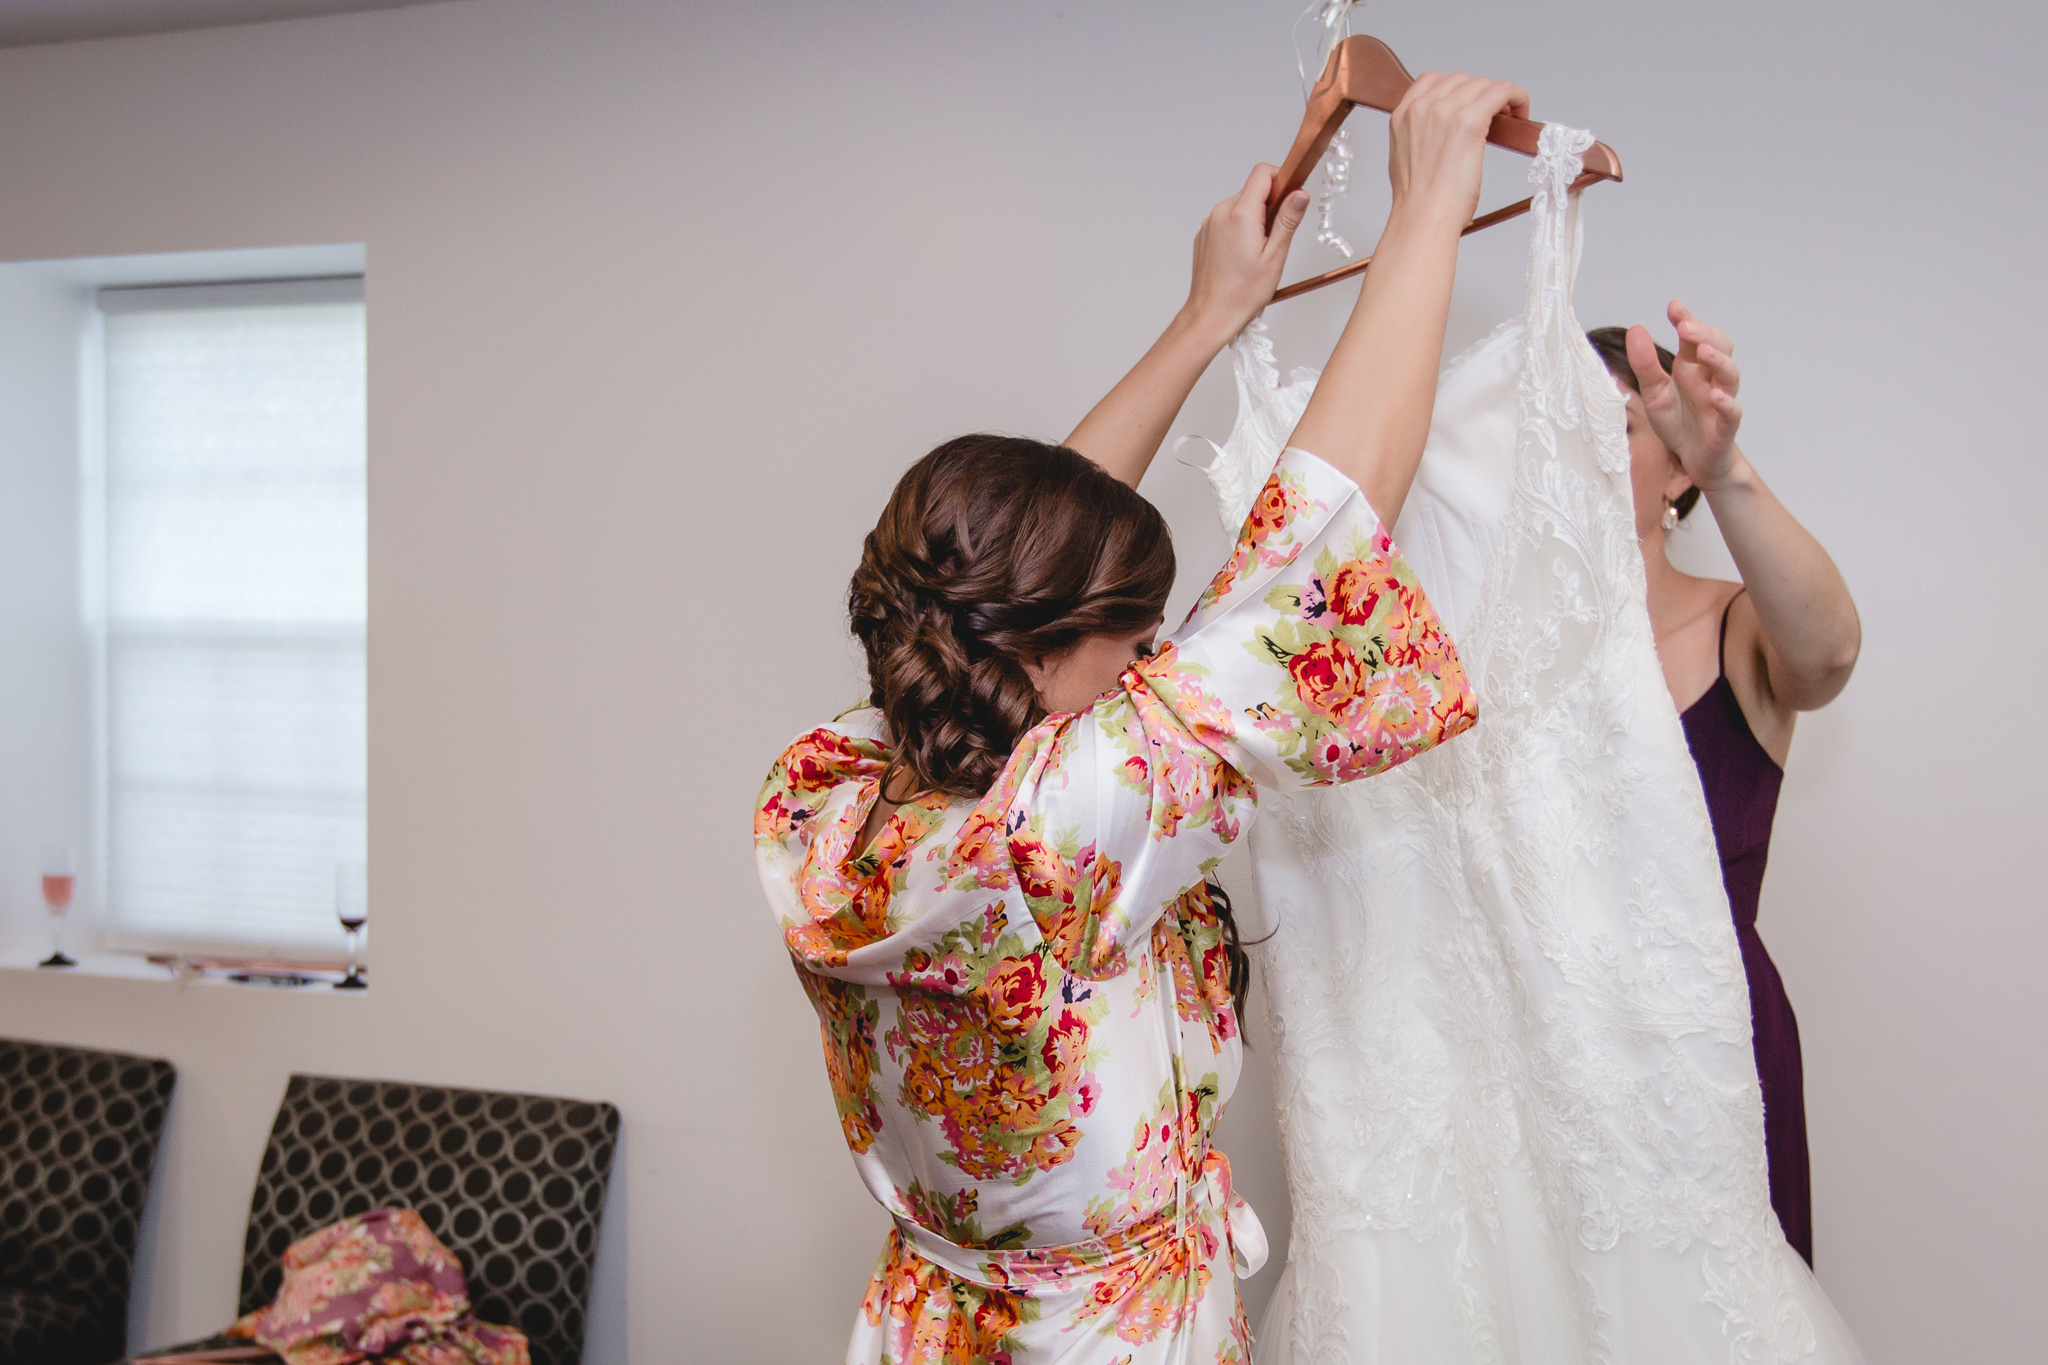 Bride takes her wedding dress off the hanger at White Barn